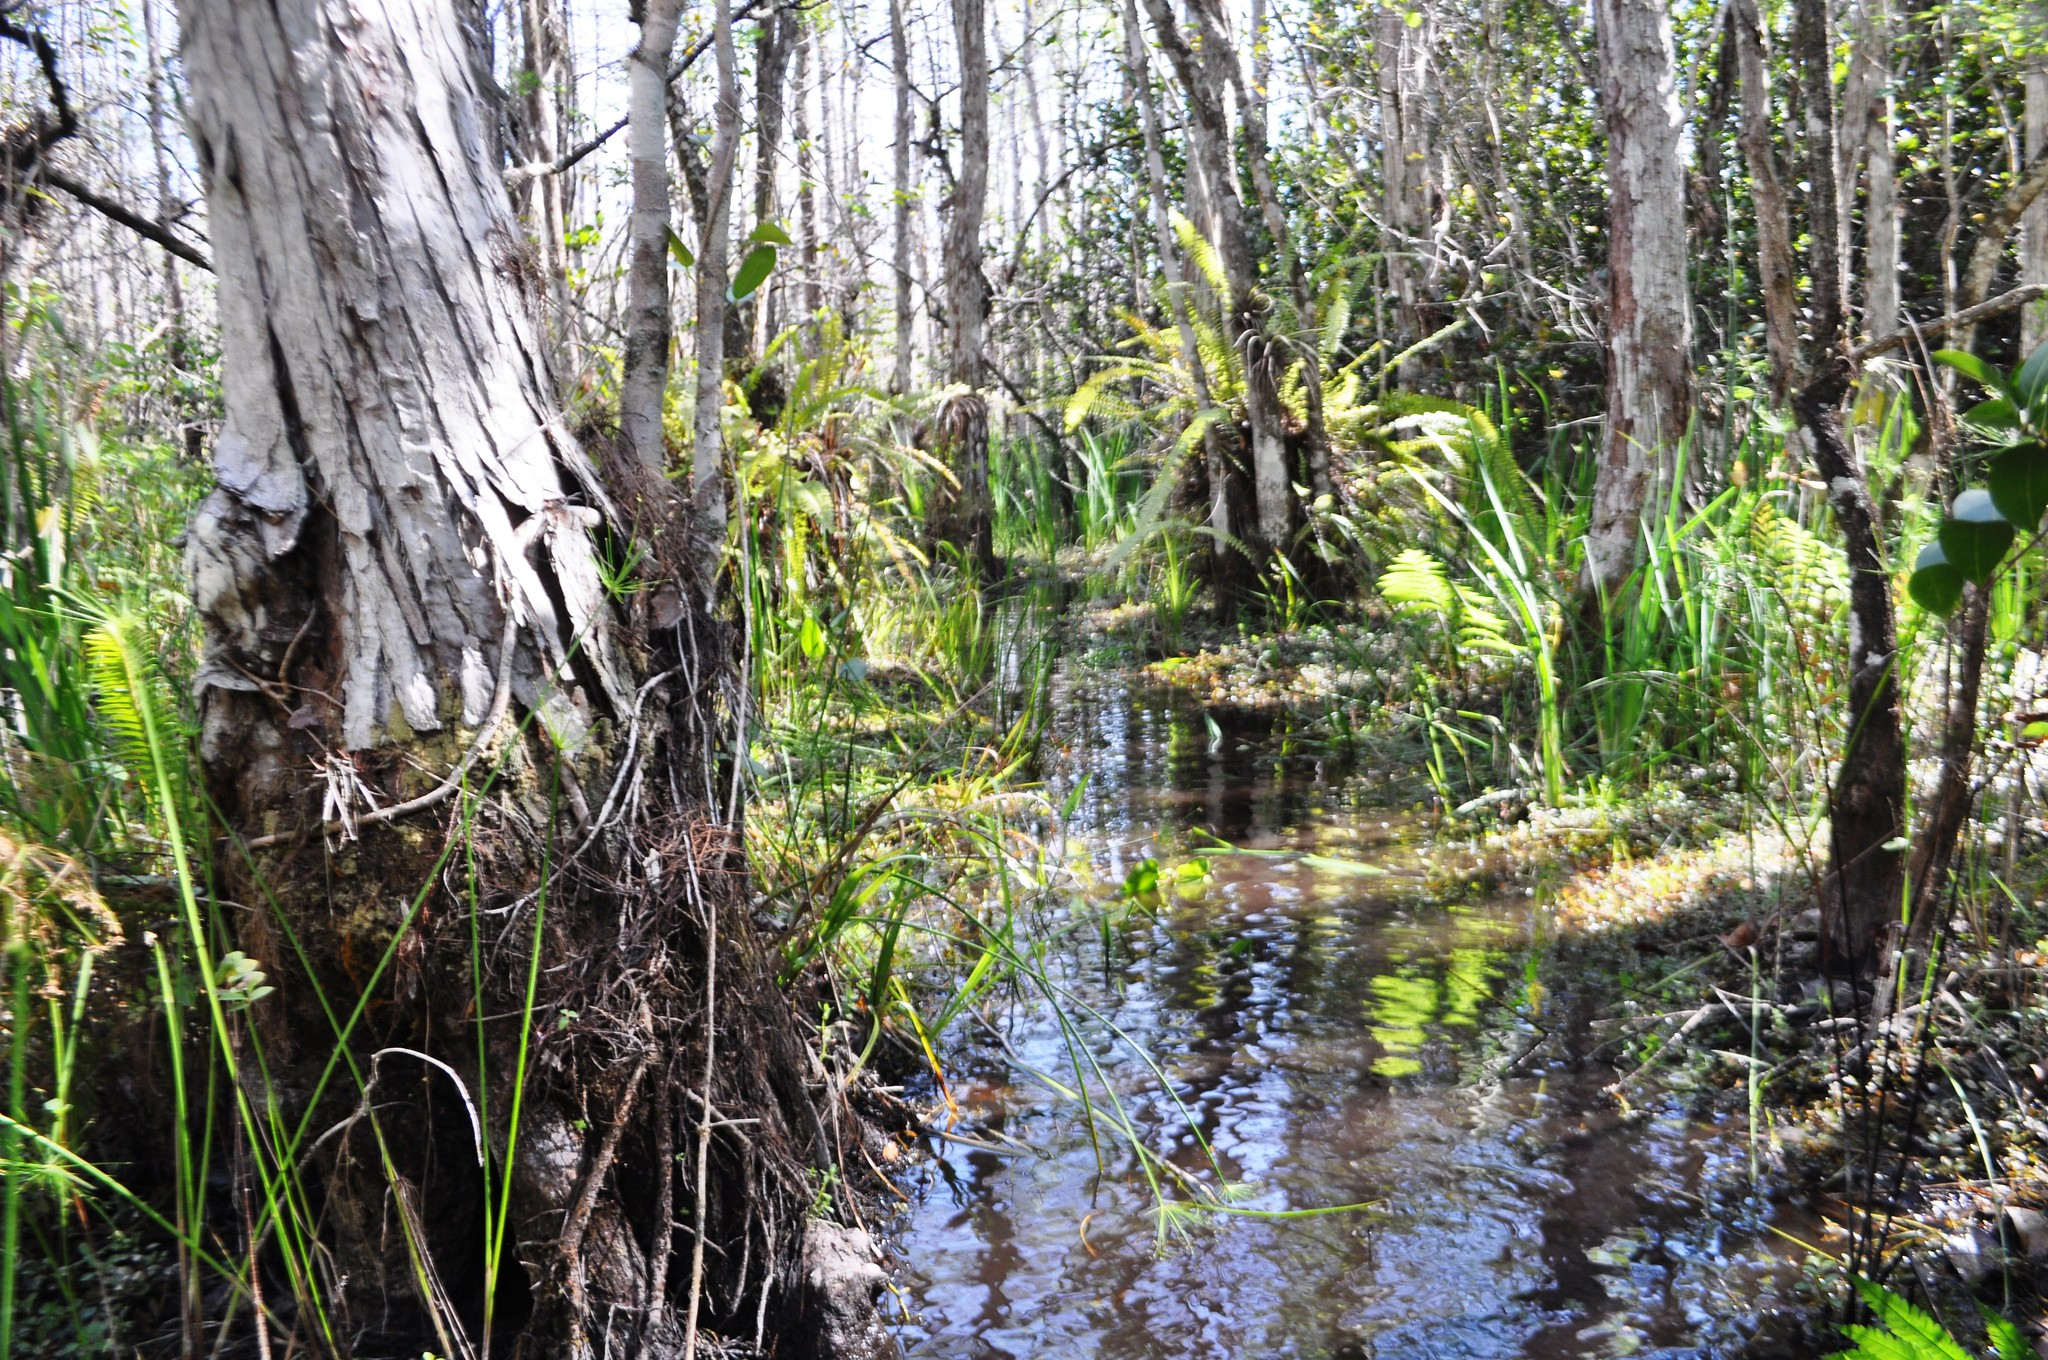 Swamp Walk with Clyde Butcher's Big Cypress Gallery, Florida, Feb. 14, 2015